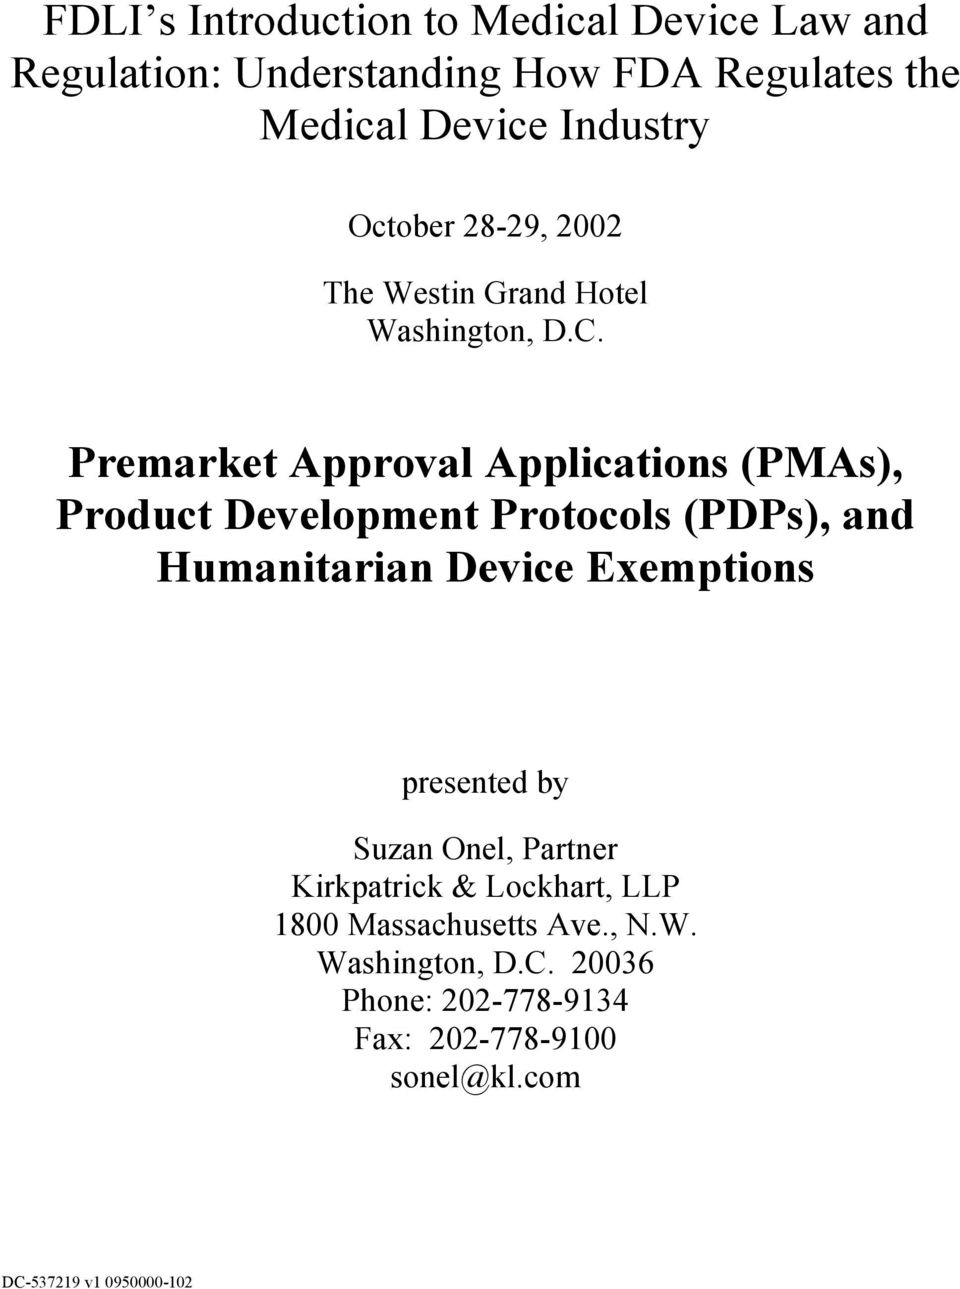 Premarket Approval Applications (PMAs), Product Development Protocols (PDPs), and Humanitarian Device Exemptions